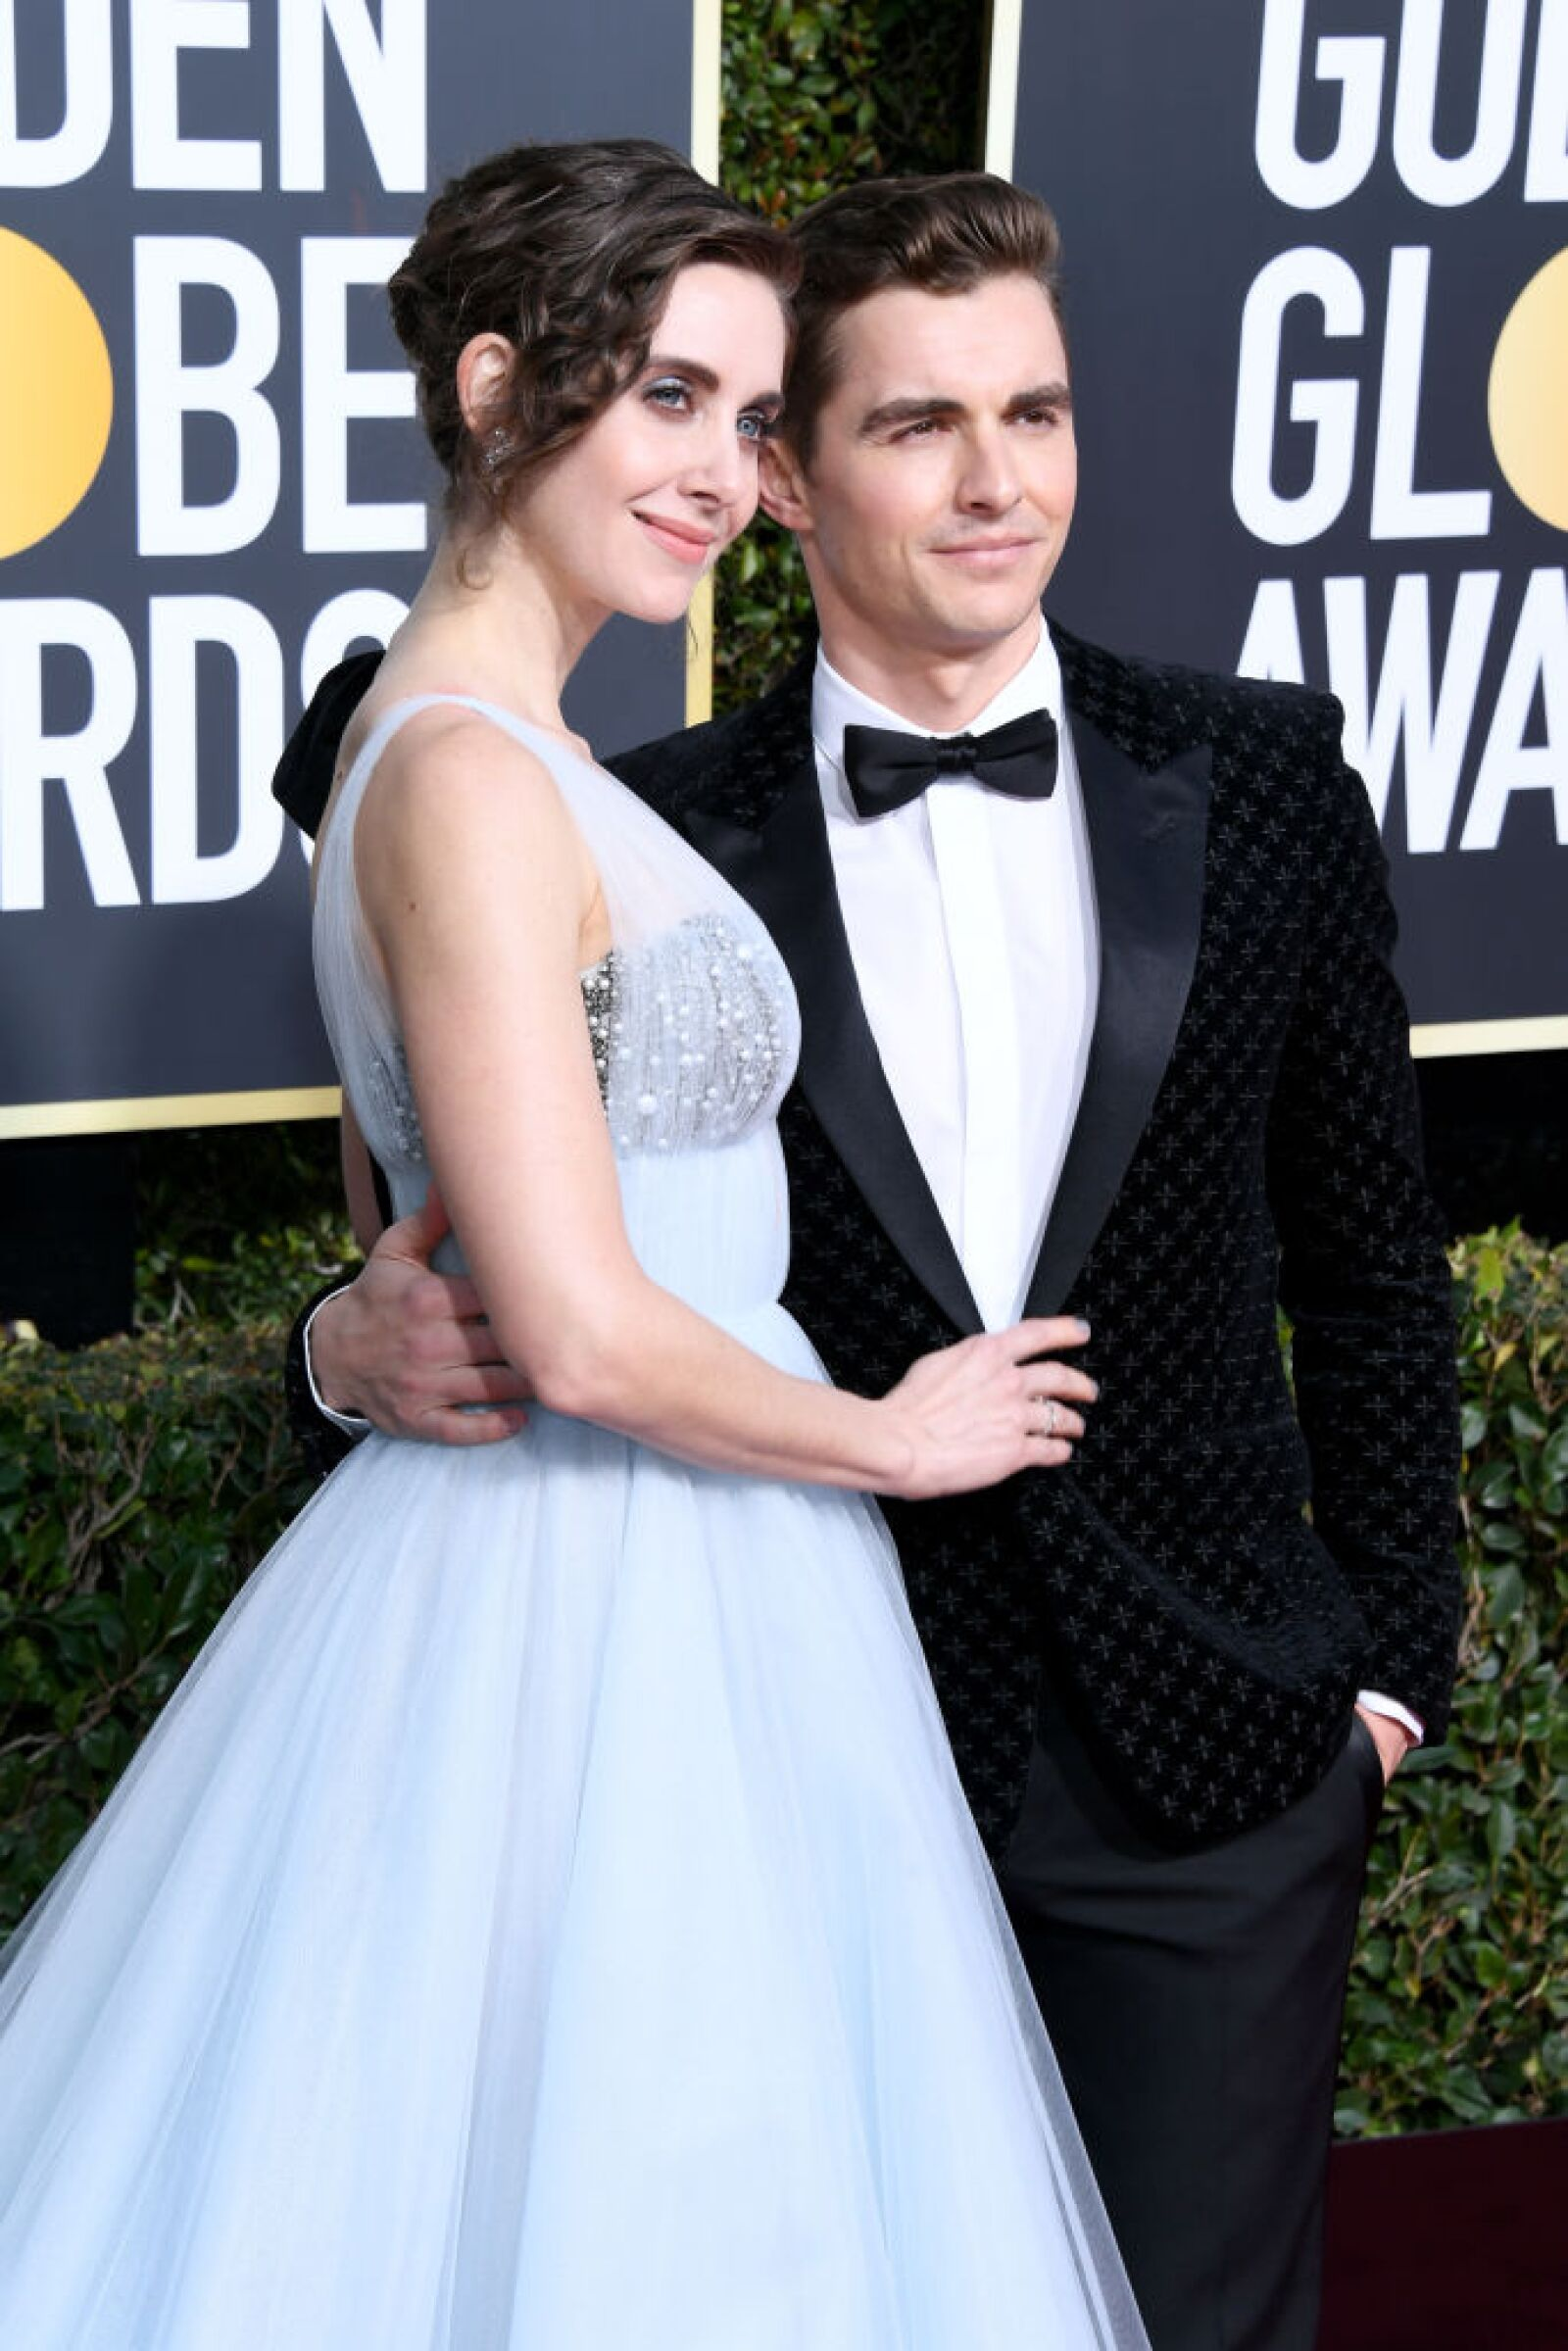 76th Annual Golden Globe Awards - Arrivals